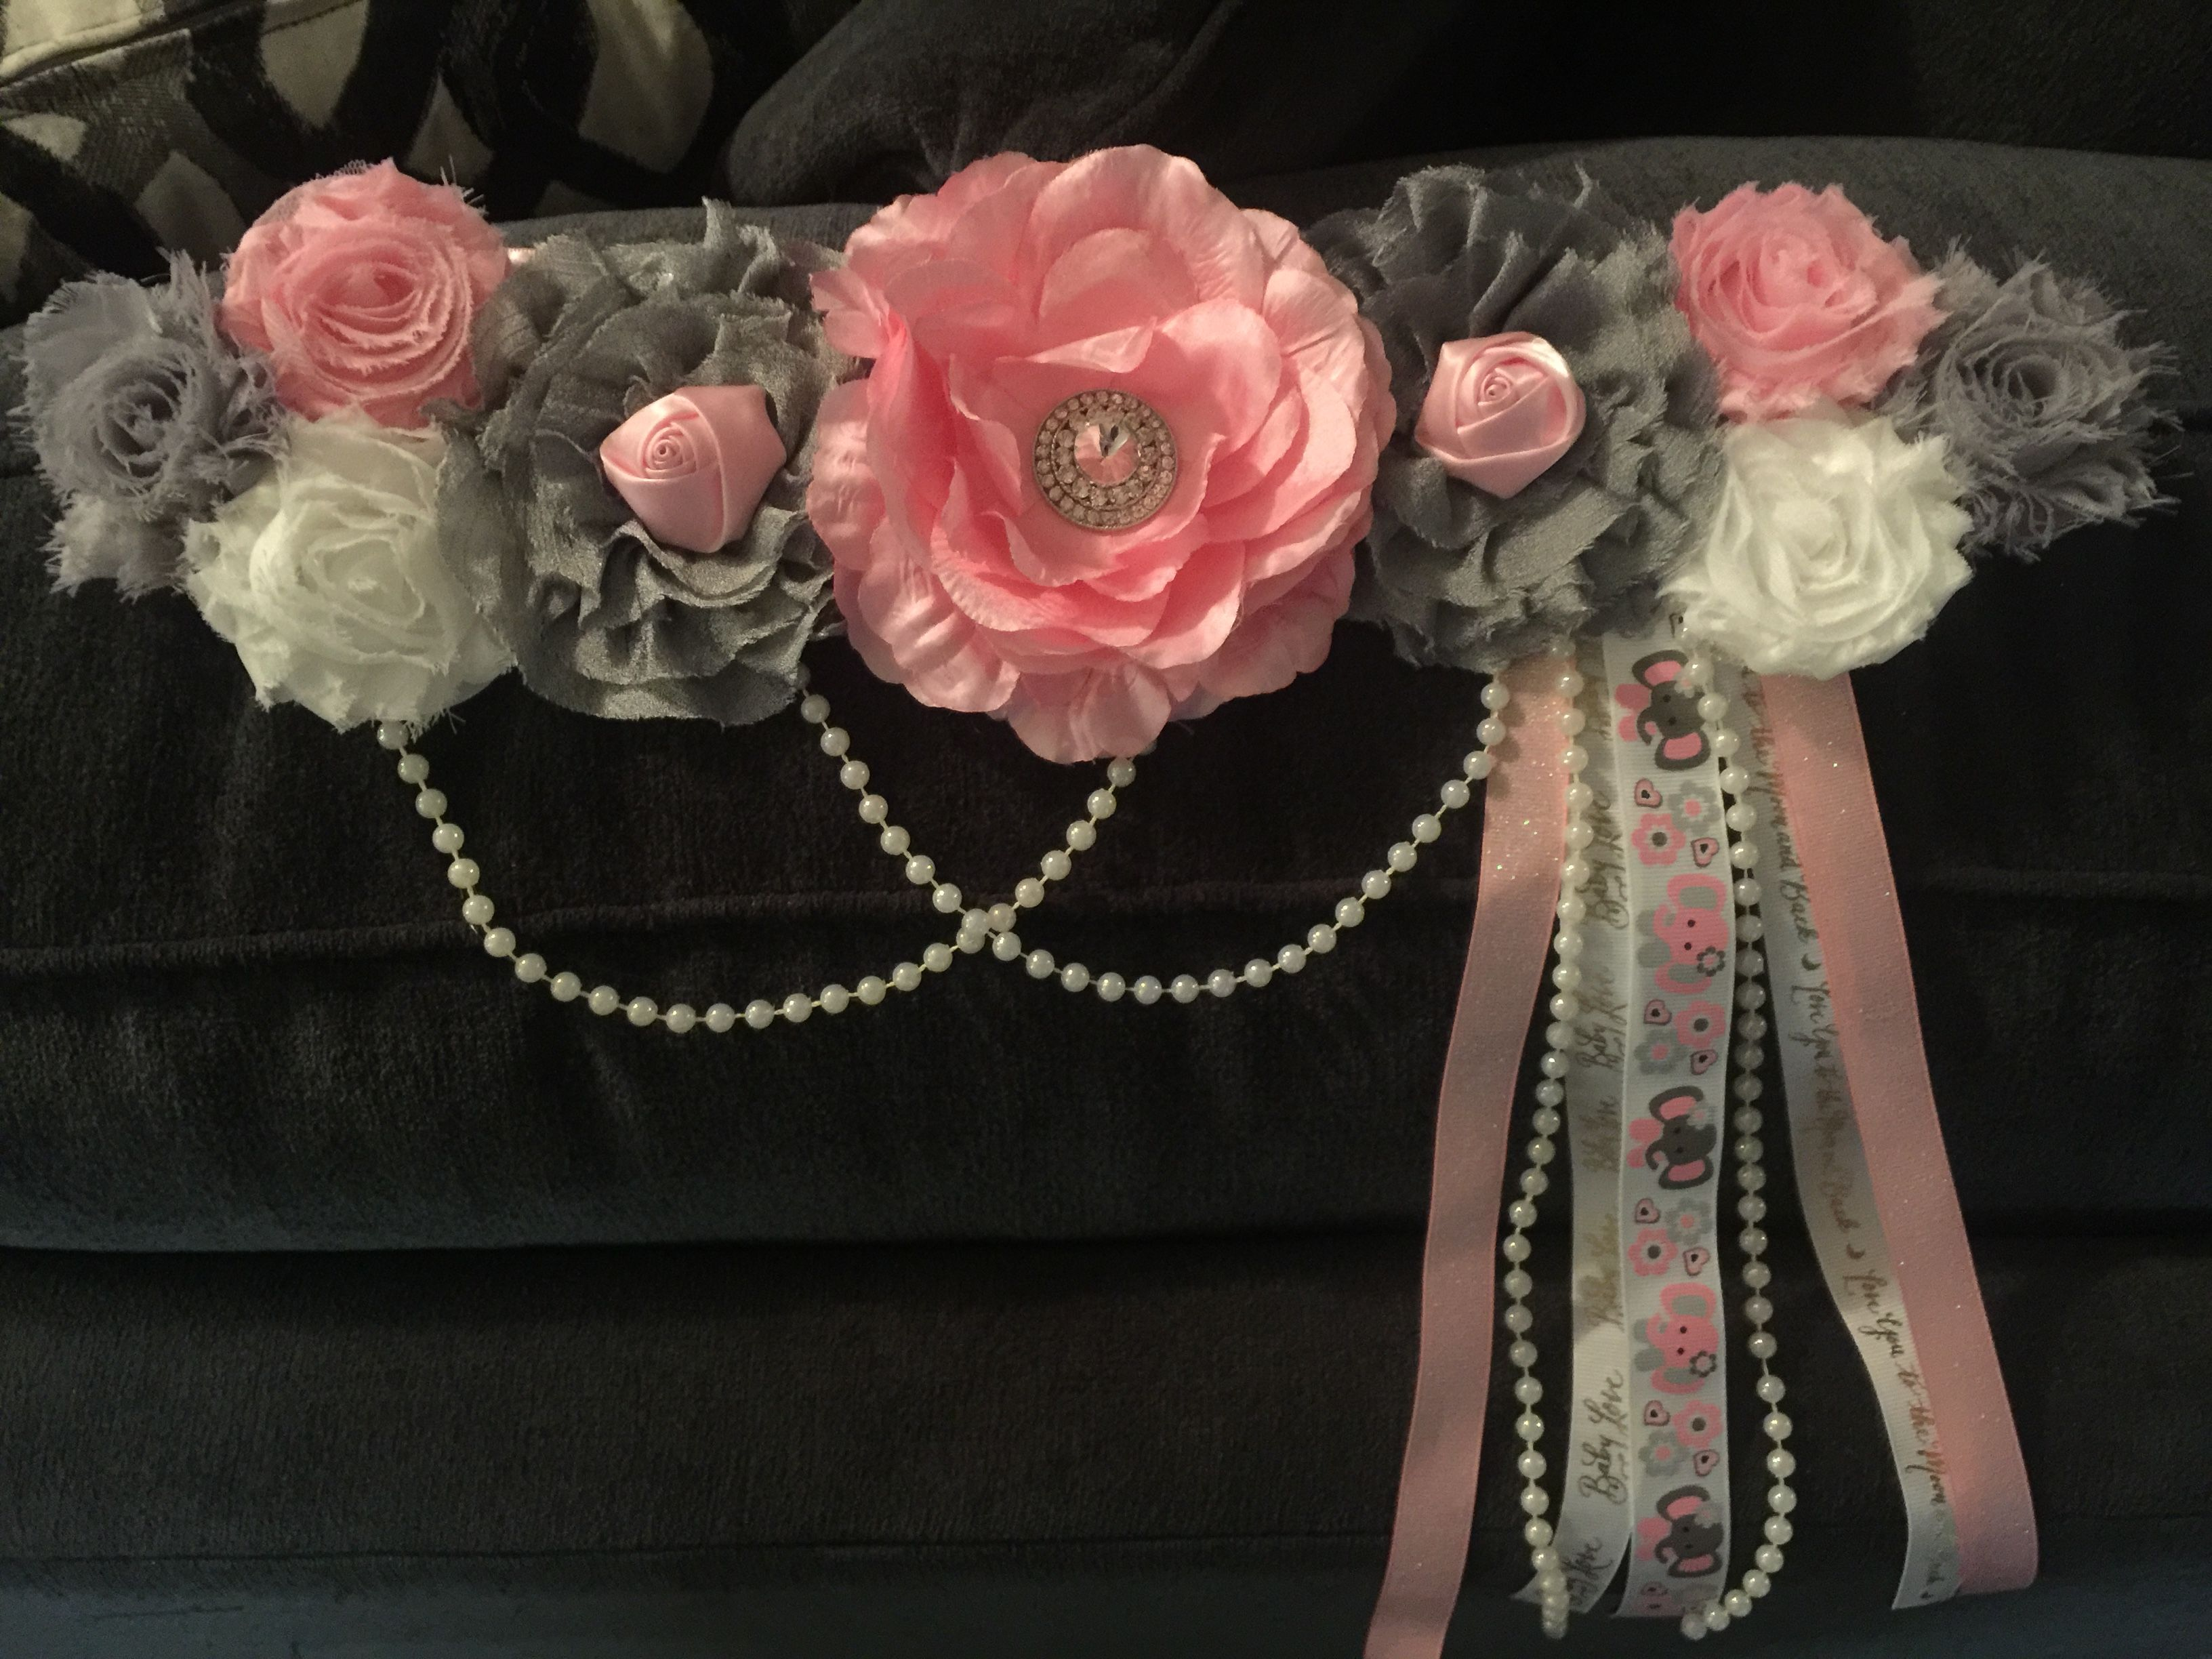 Pink Gray White Maternity Sash For A Baby Shower With Pearls. Elephant  Themed.